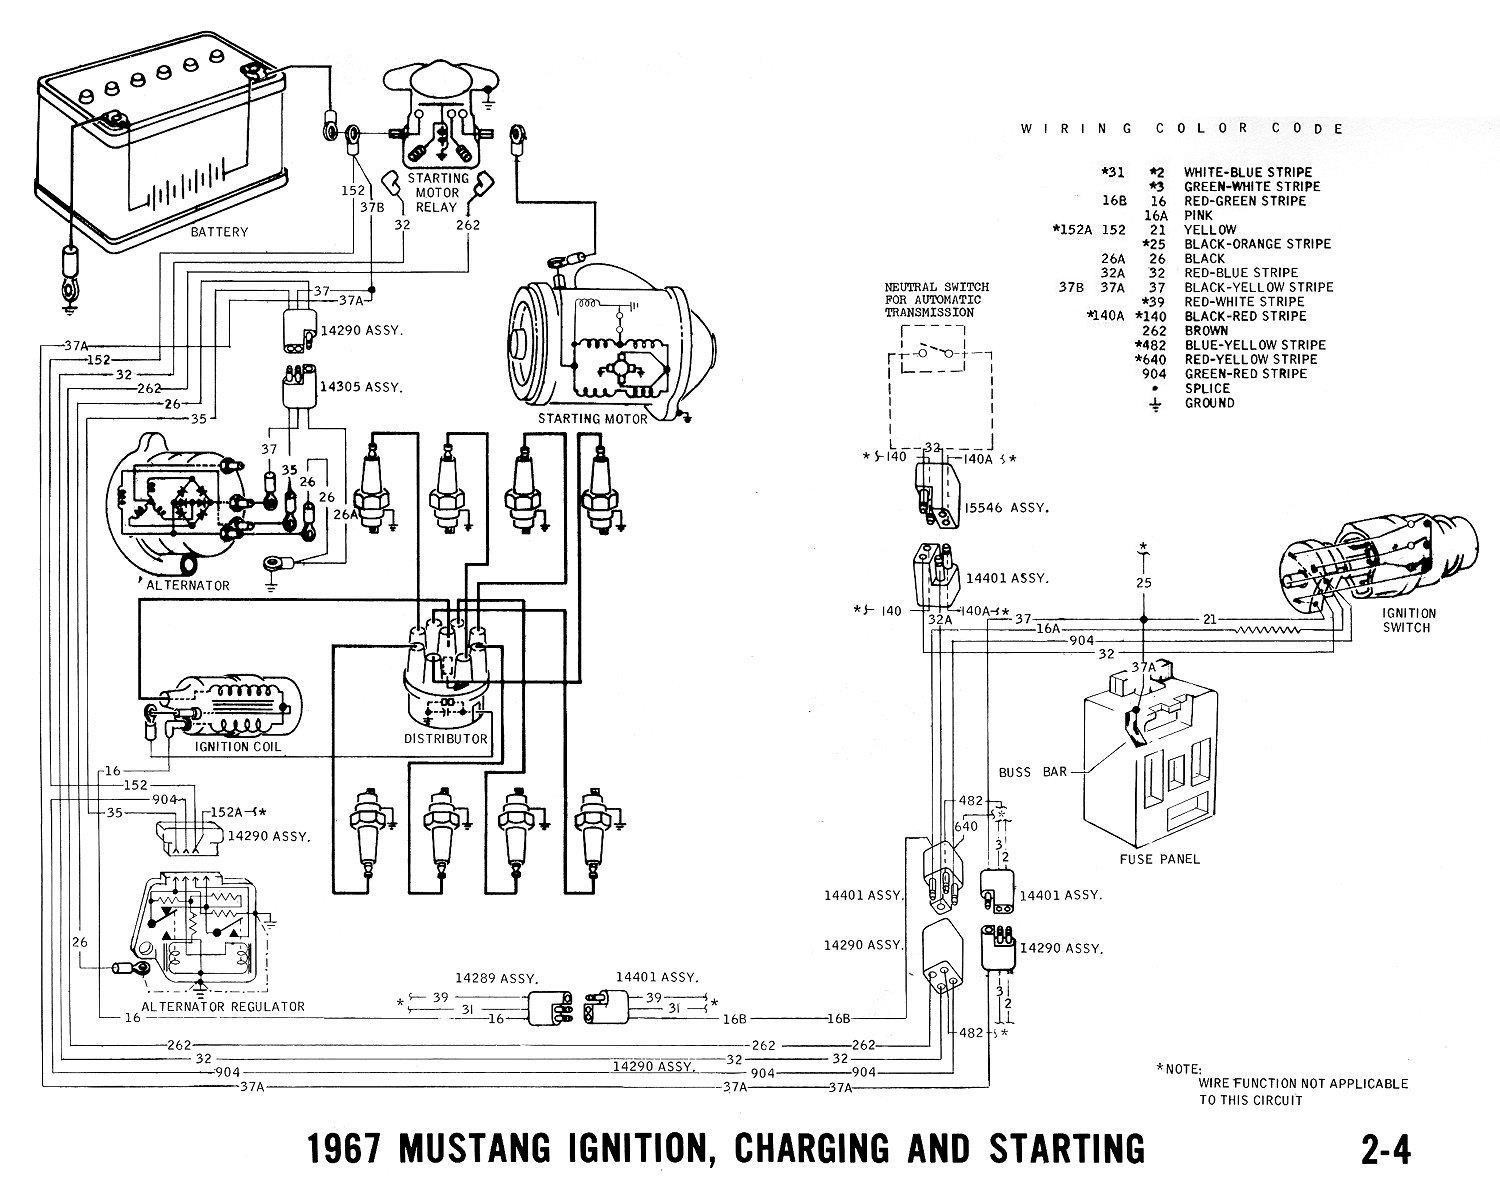 1967 ford mustang fuse box explore schematic wiring diagram u2022 rh appkhi com 67 mustang fuse box diagram 1967 mustang fuse box diagram